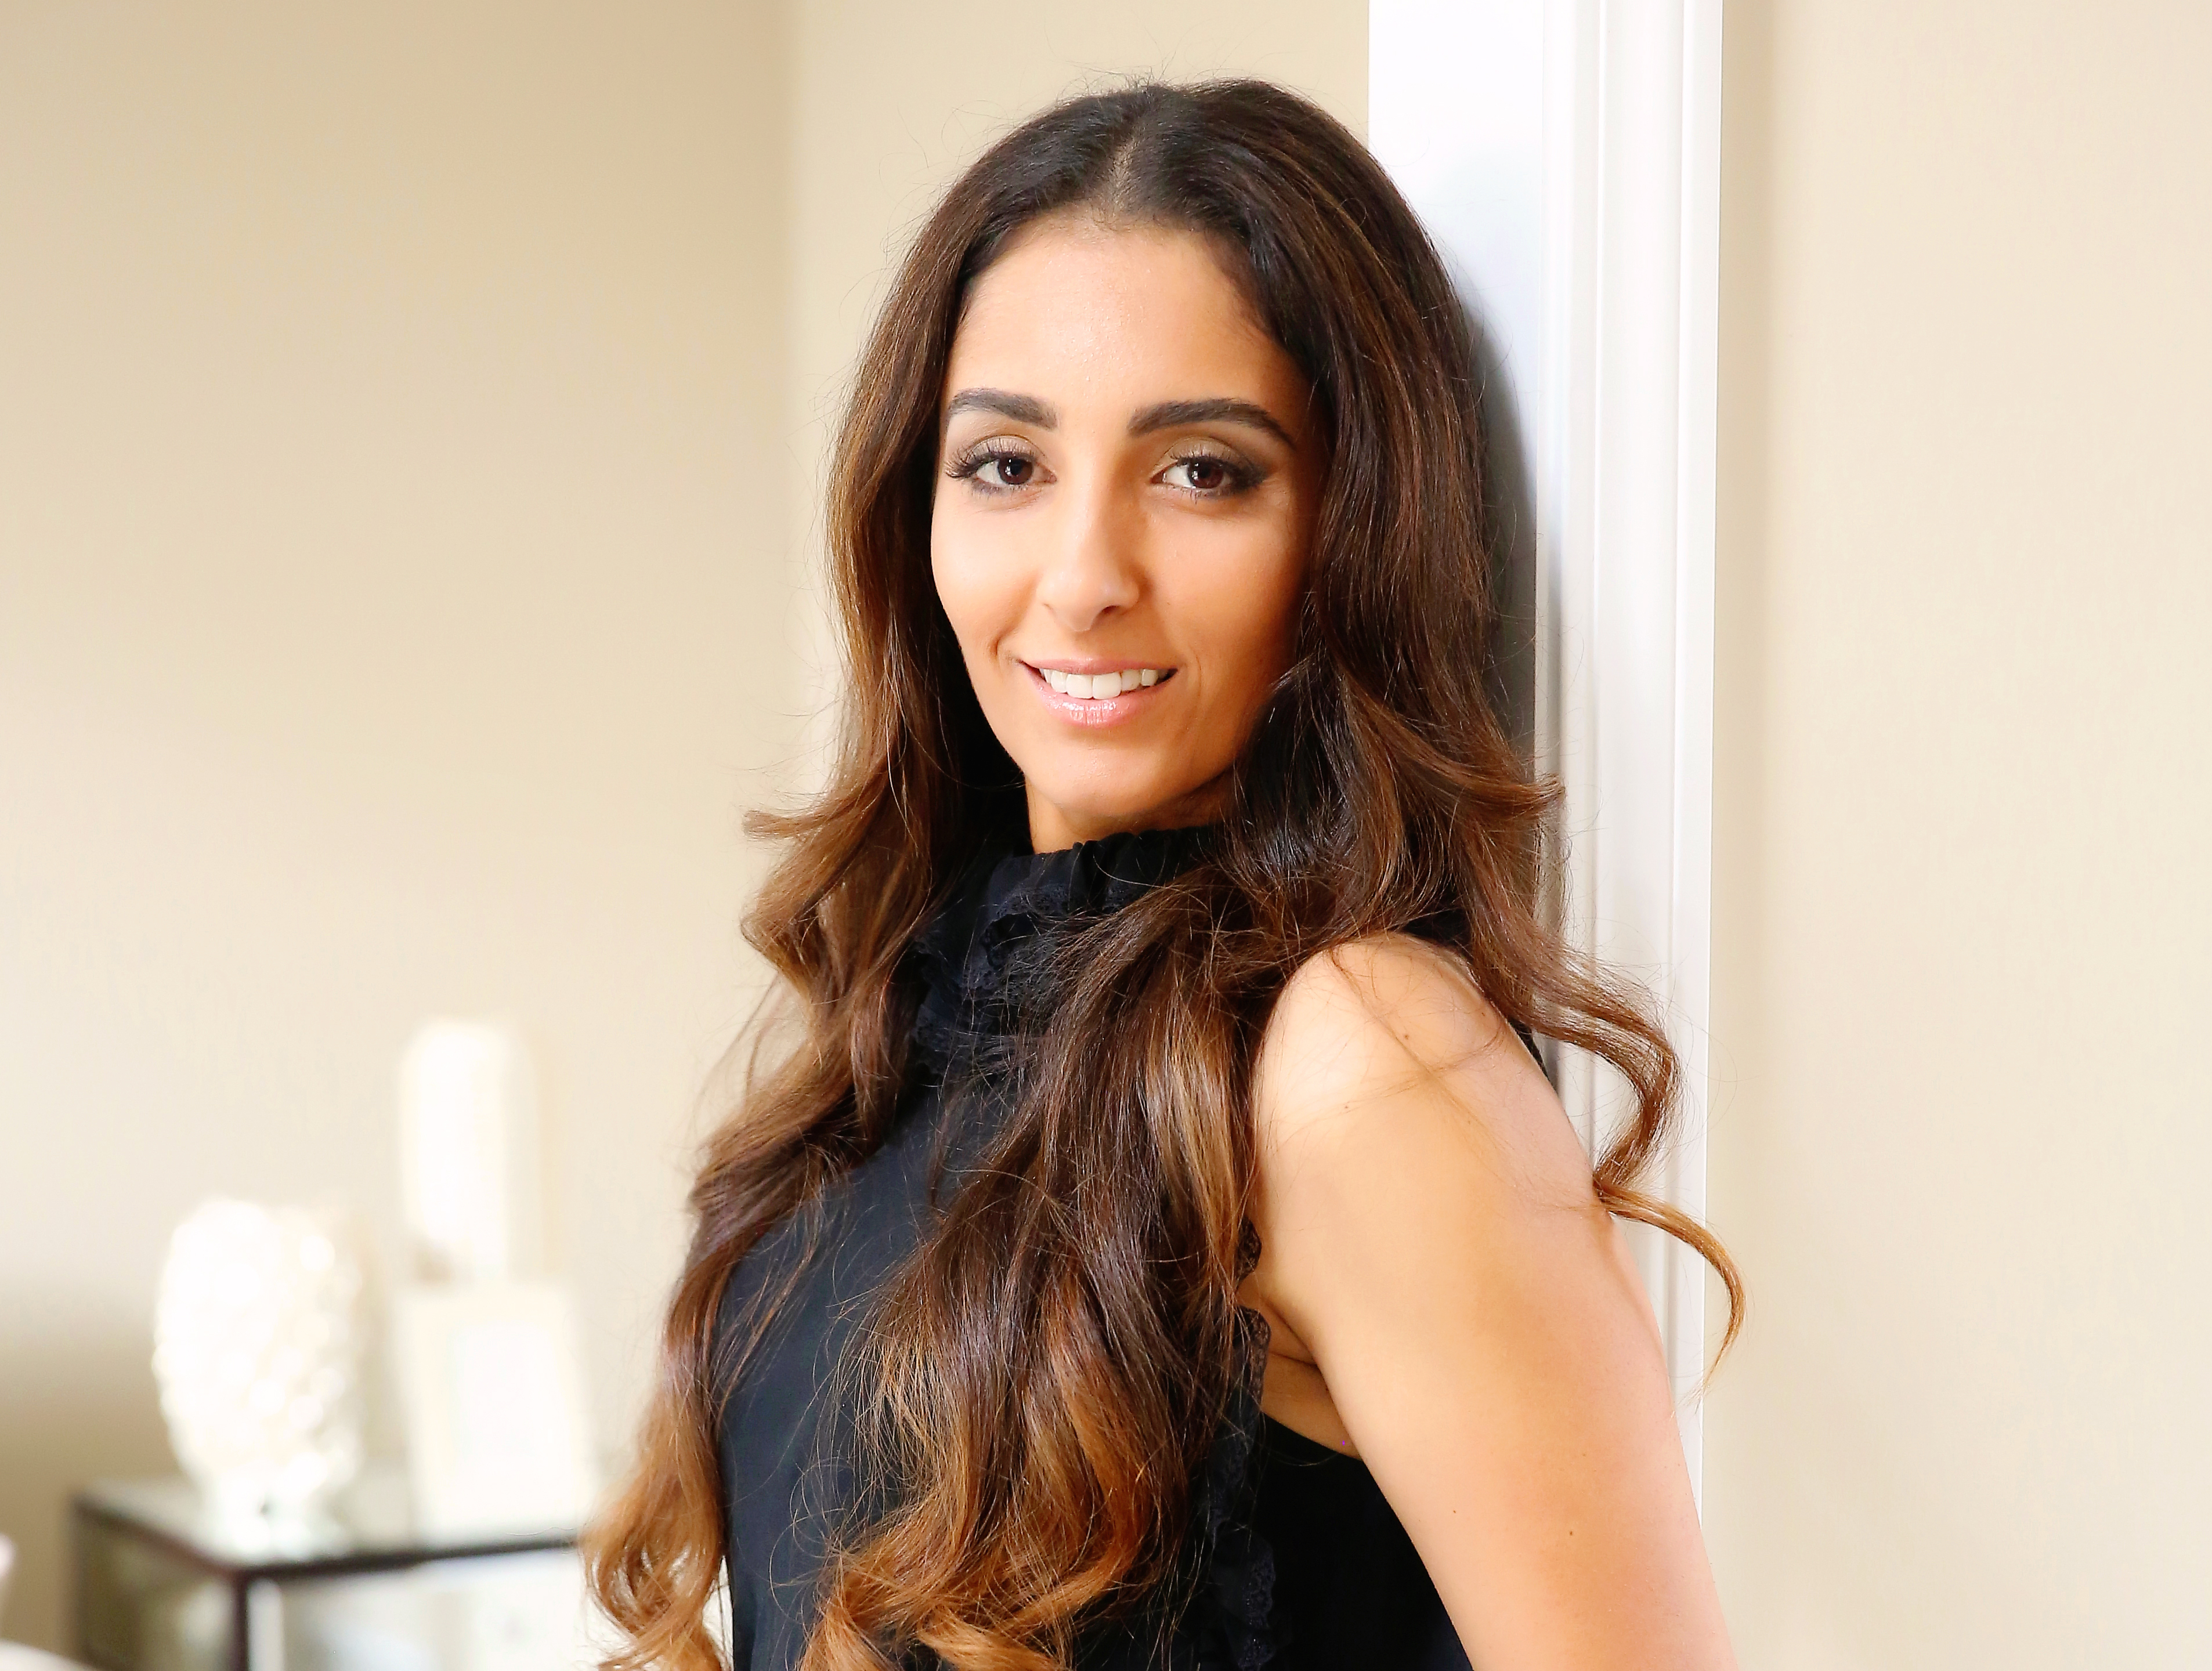 Home Decor Guru Farah Merhi Gives Us All The Deets On How To Slay At Spring Cleaning Hellogiggles